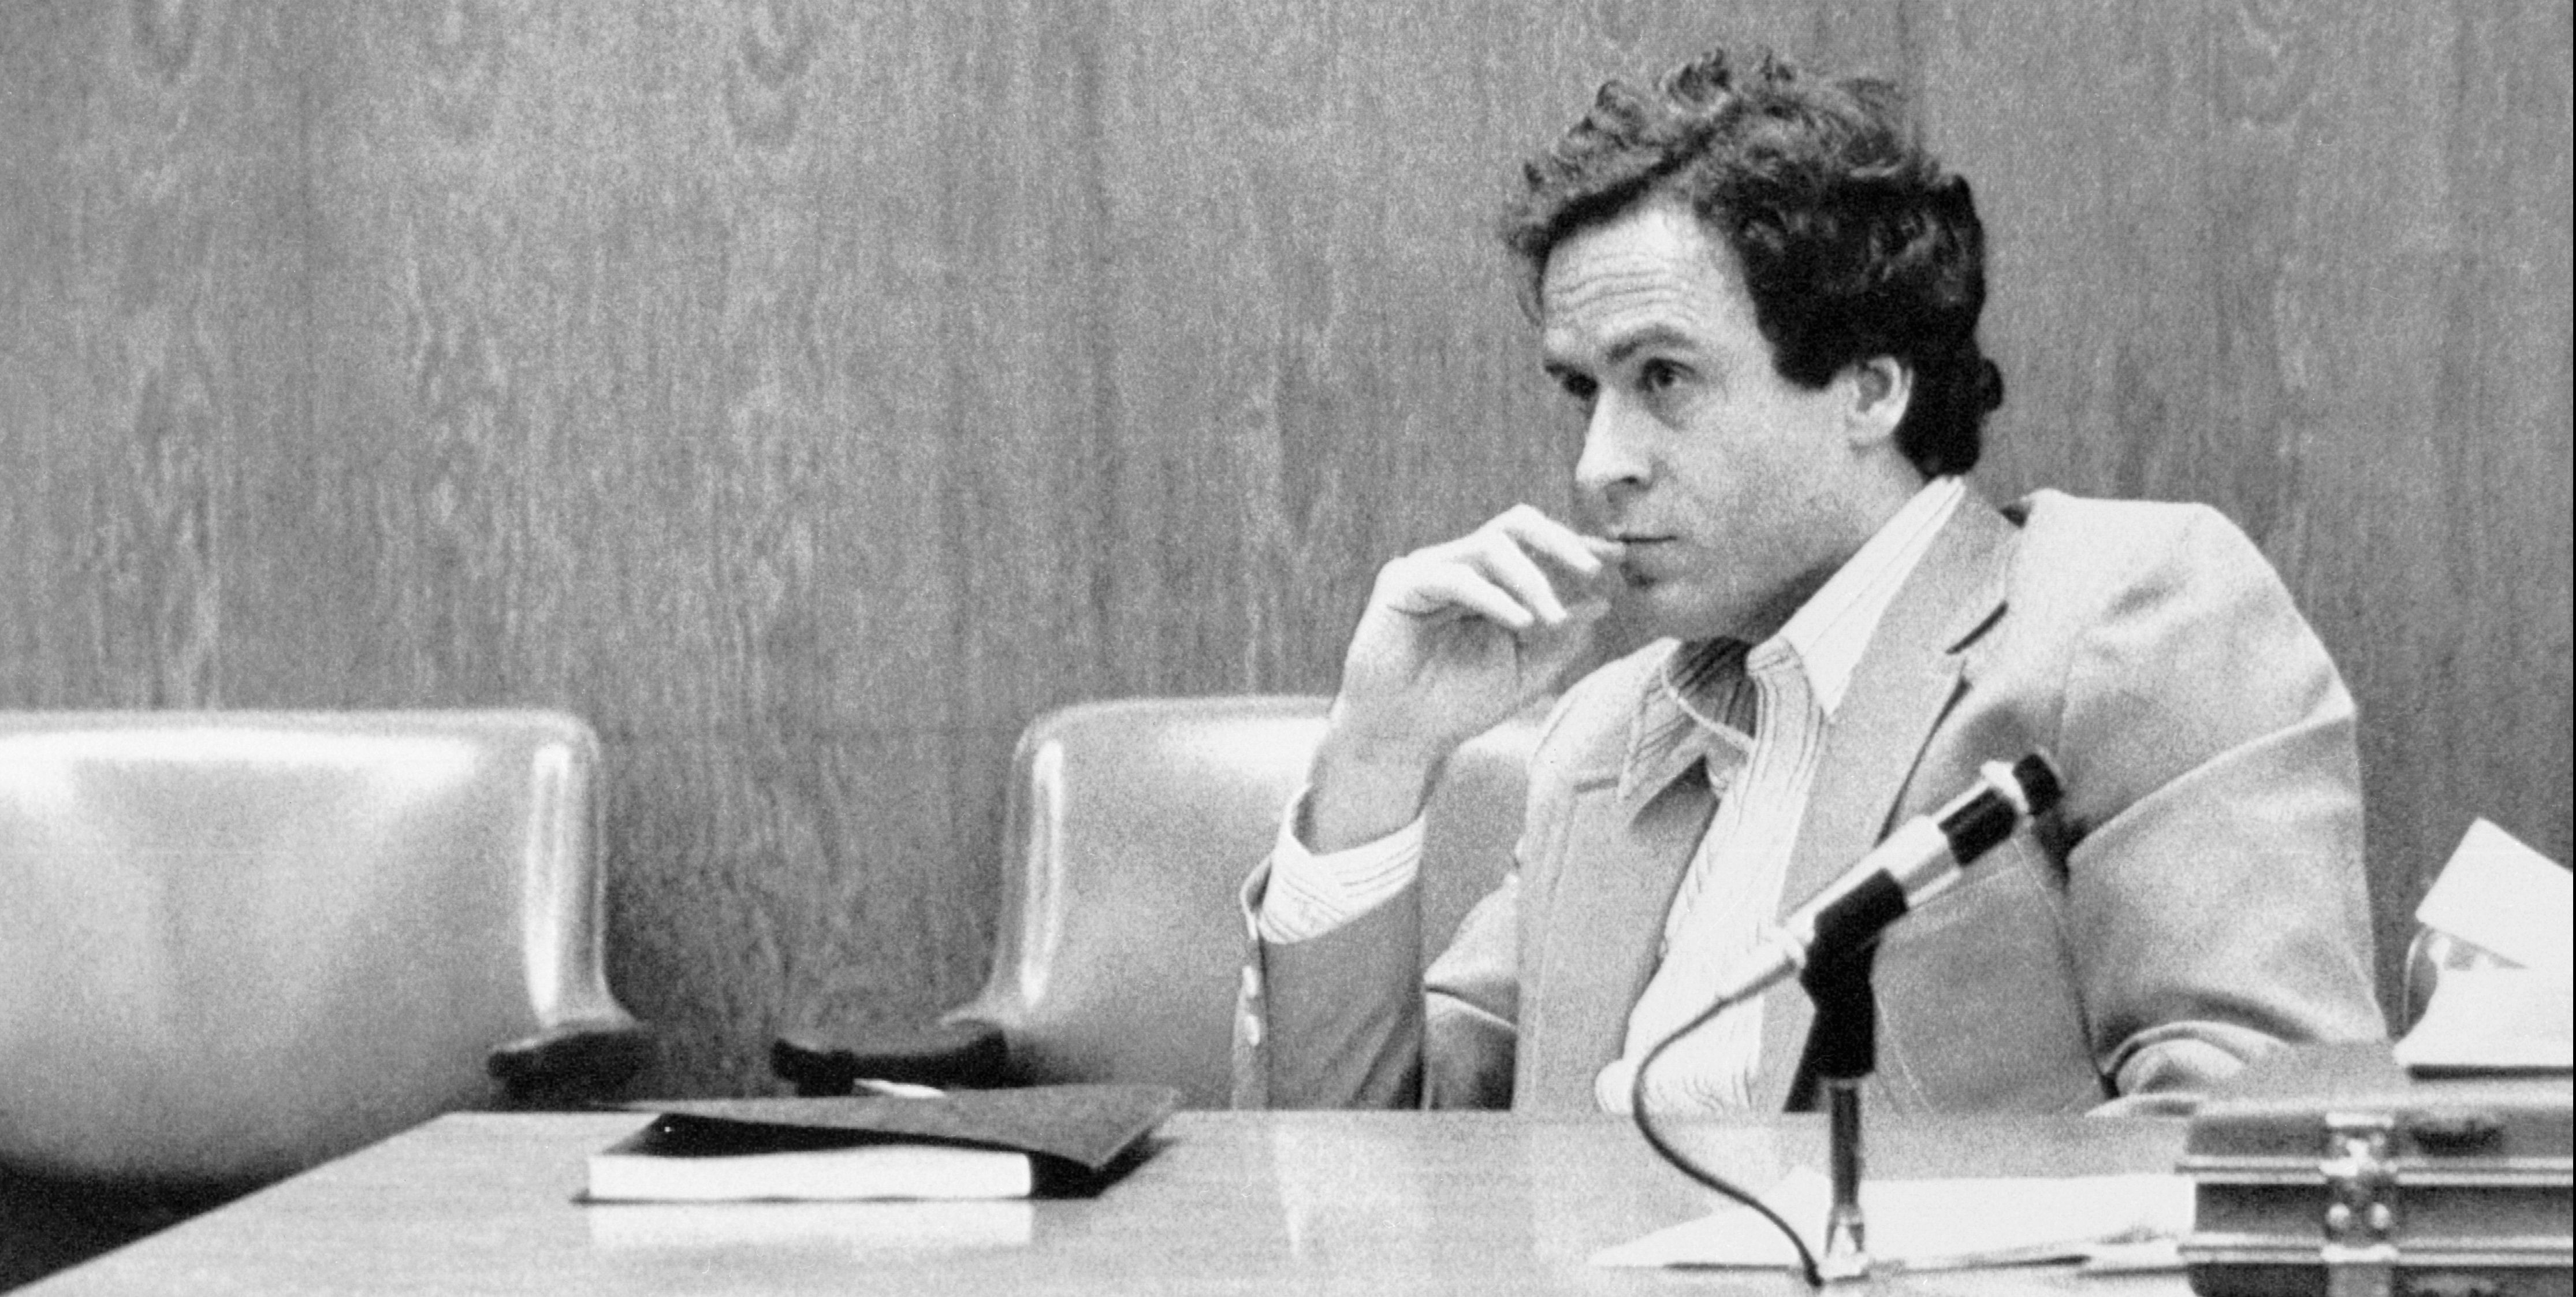 Netflix's film covers the end of Ted Bundy's murder spree.